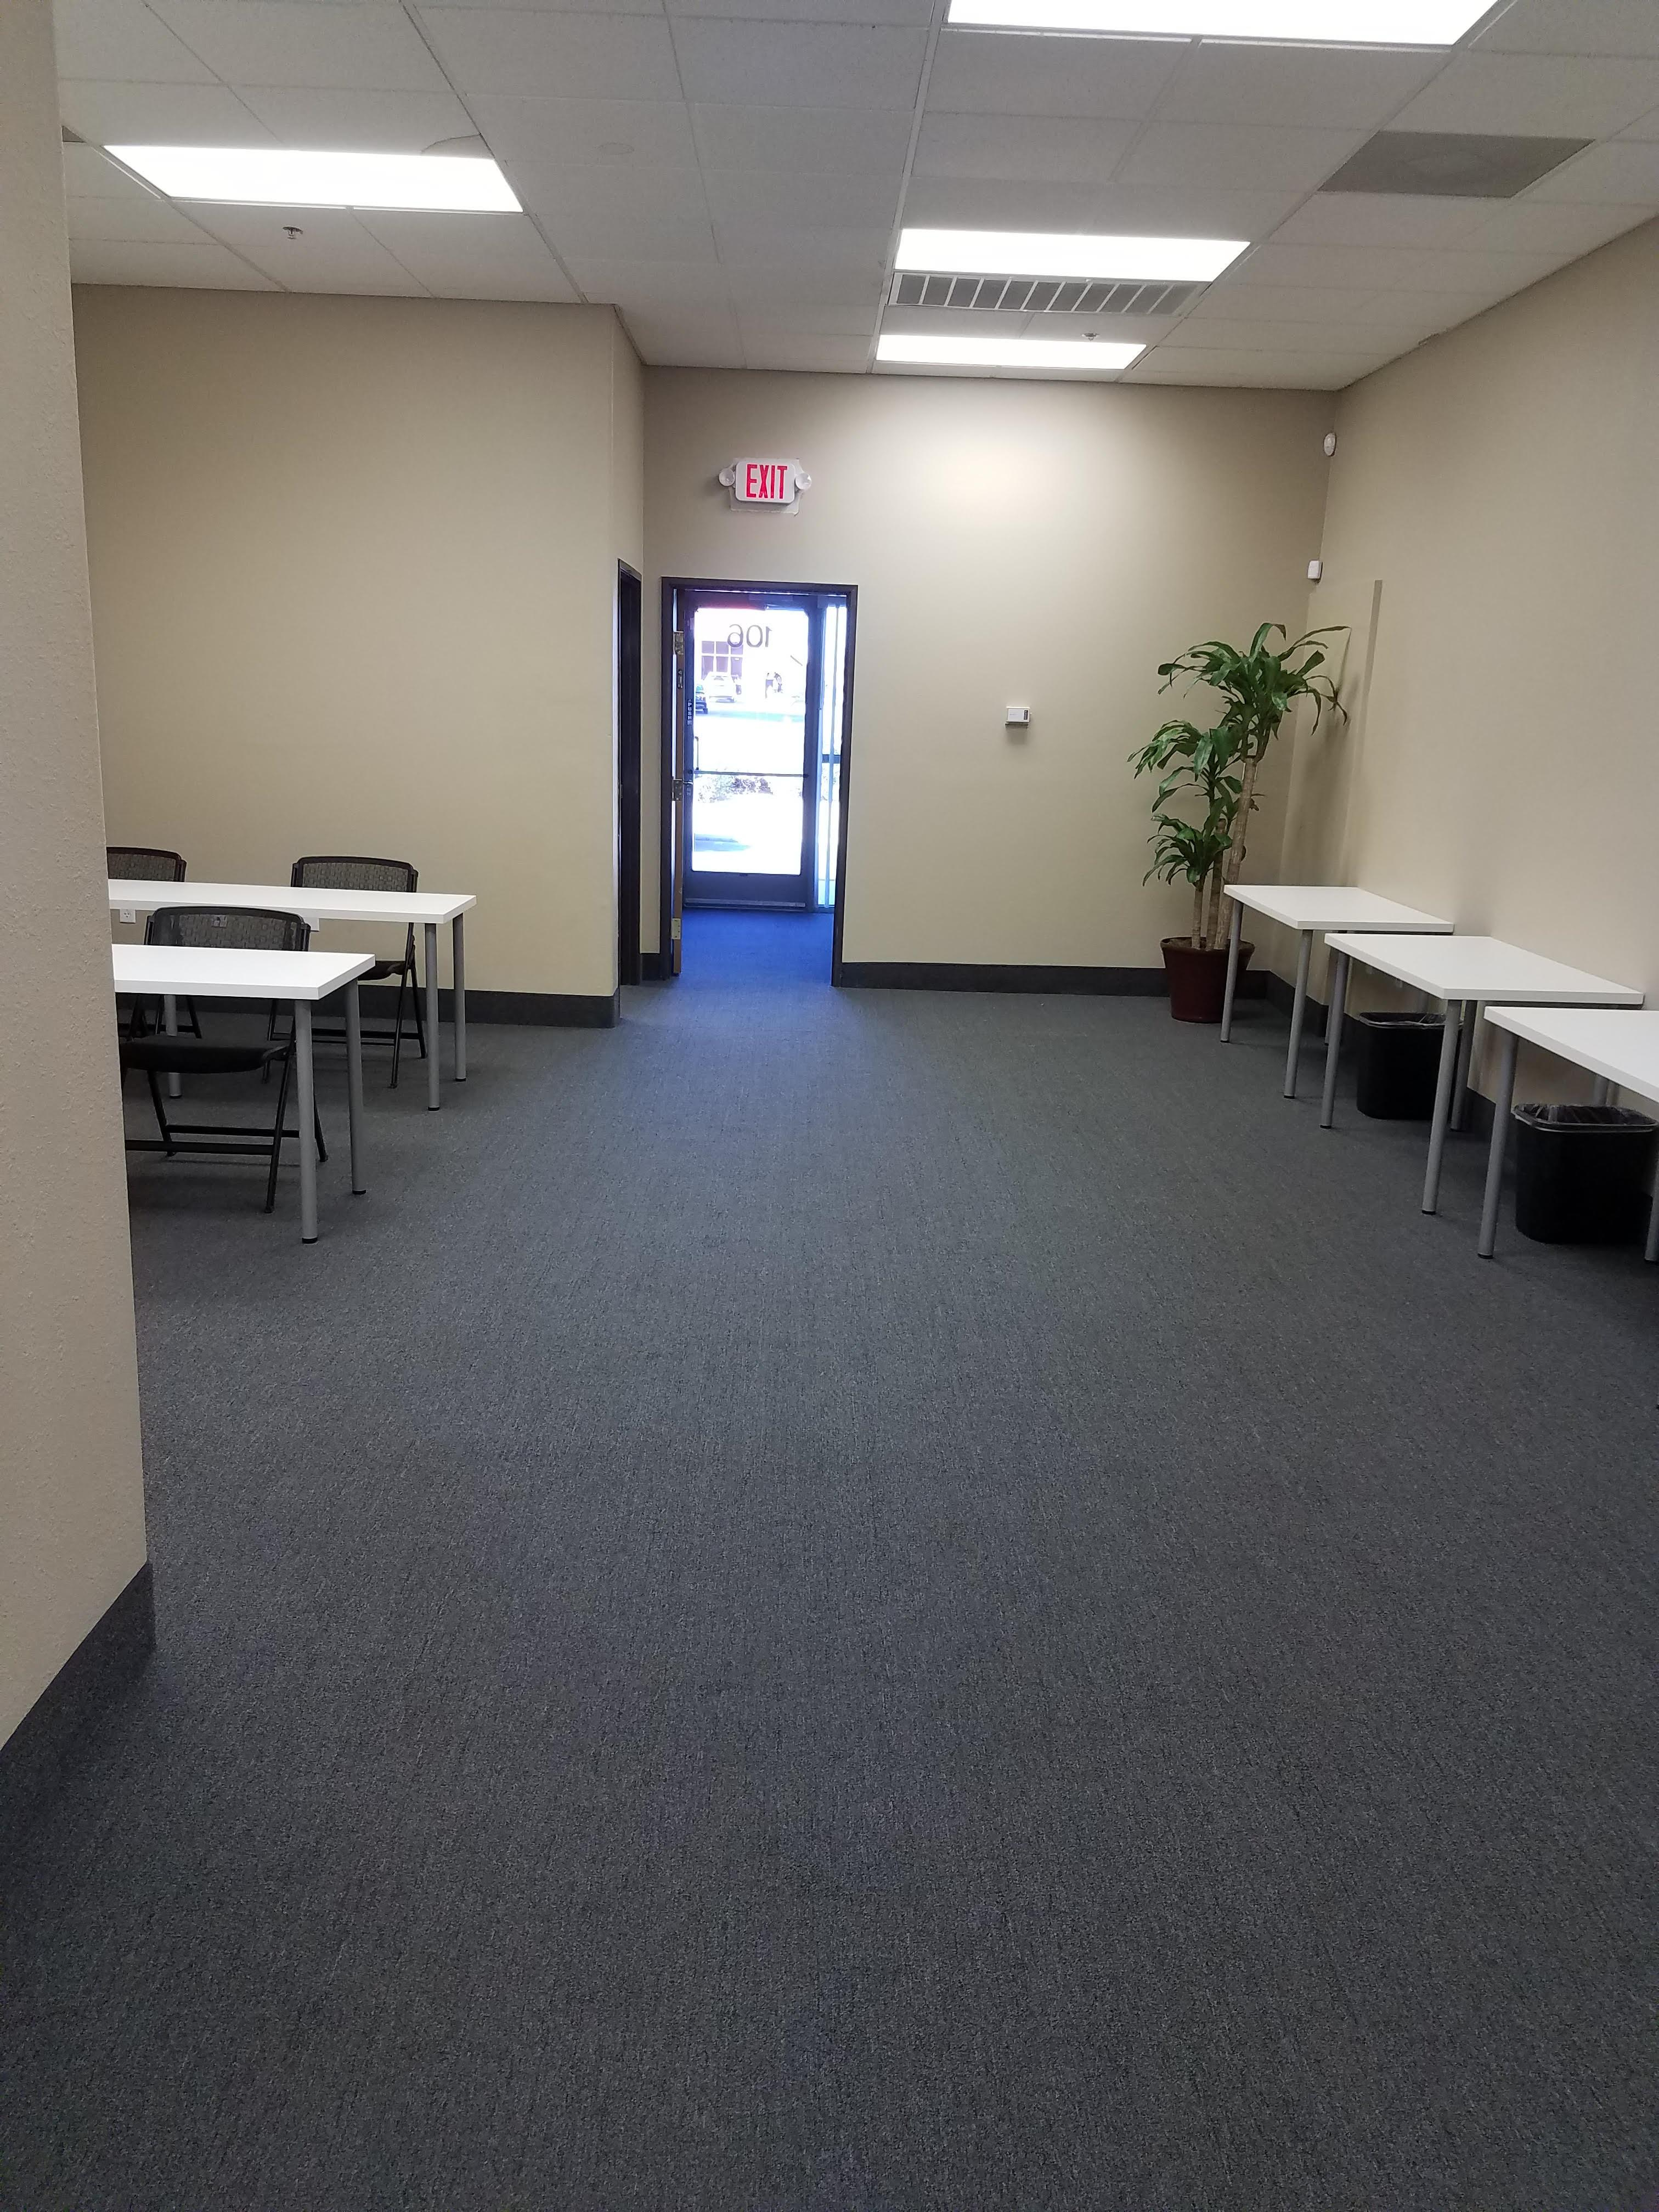 Evus Technologies - Open Area with Meeting Space